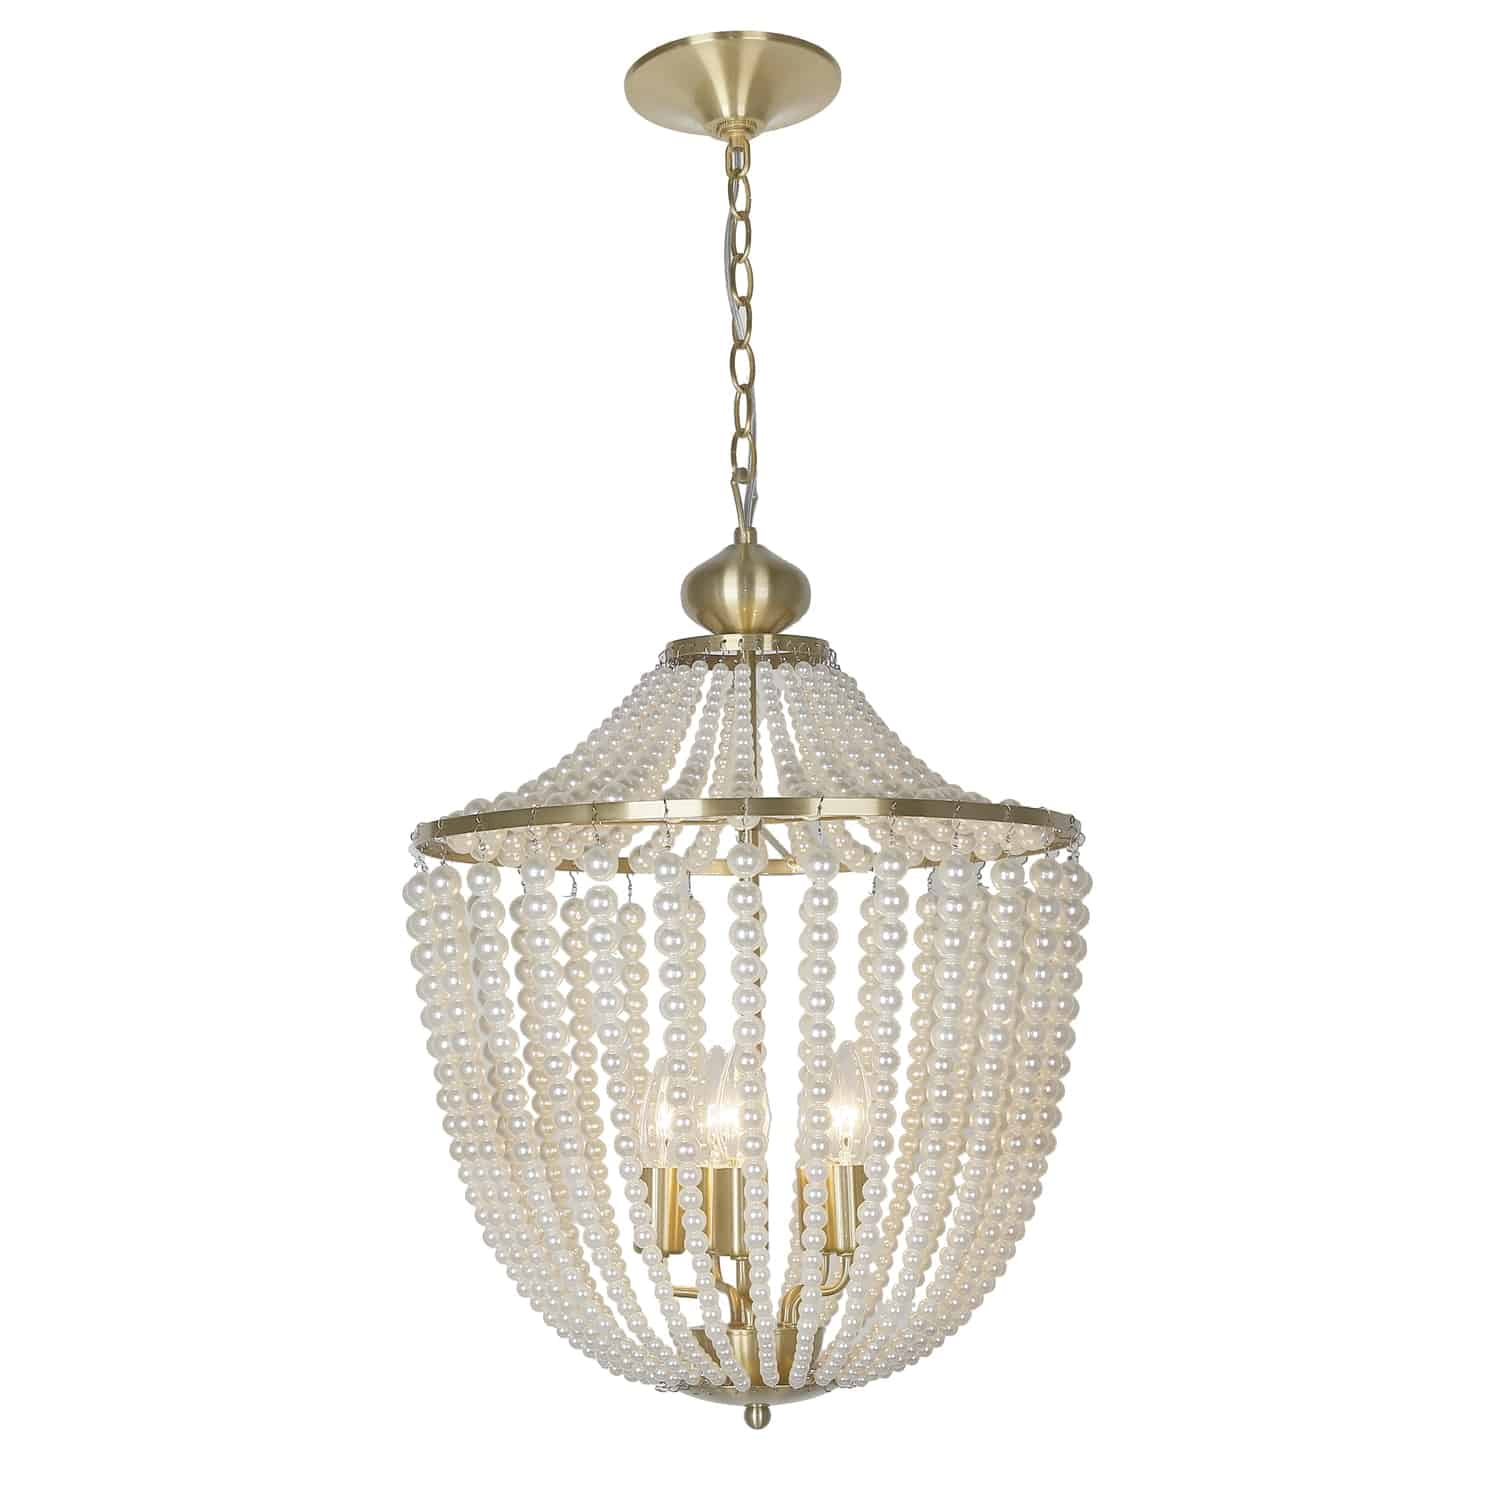 5 Light Incandescent Chandelier Aged Brass Finish with pearls